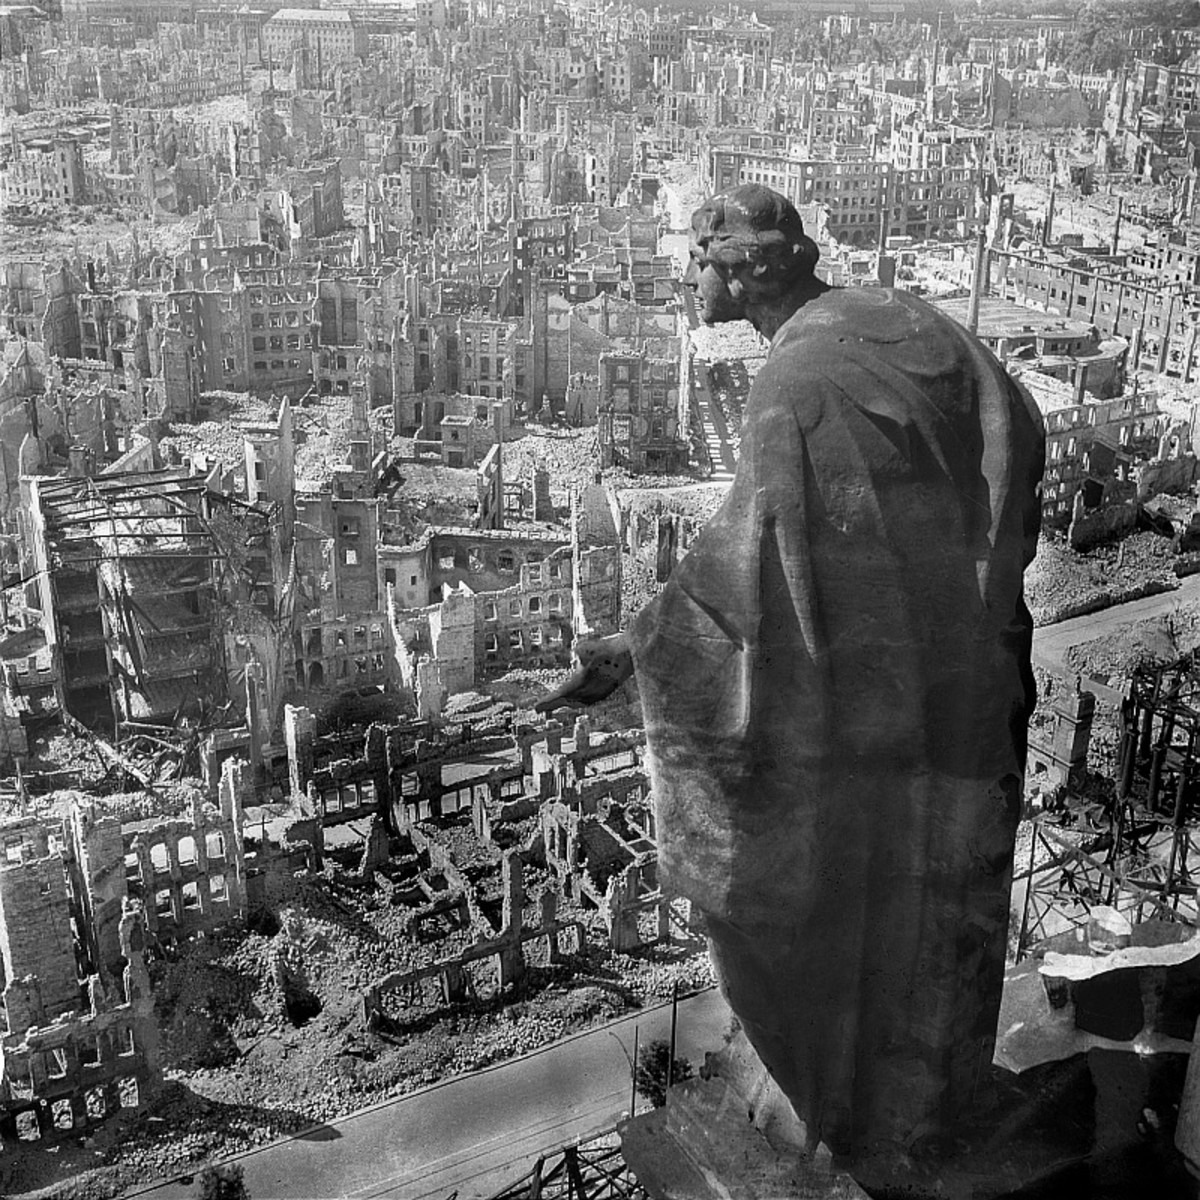 About 90 percent of central Dresden was destroyed.